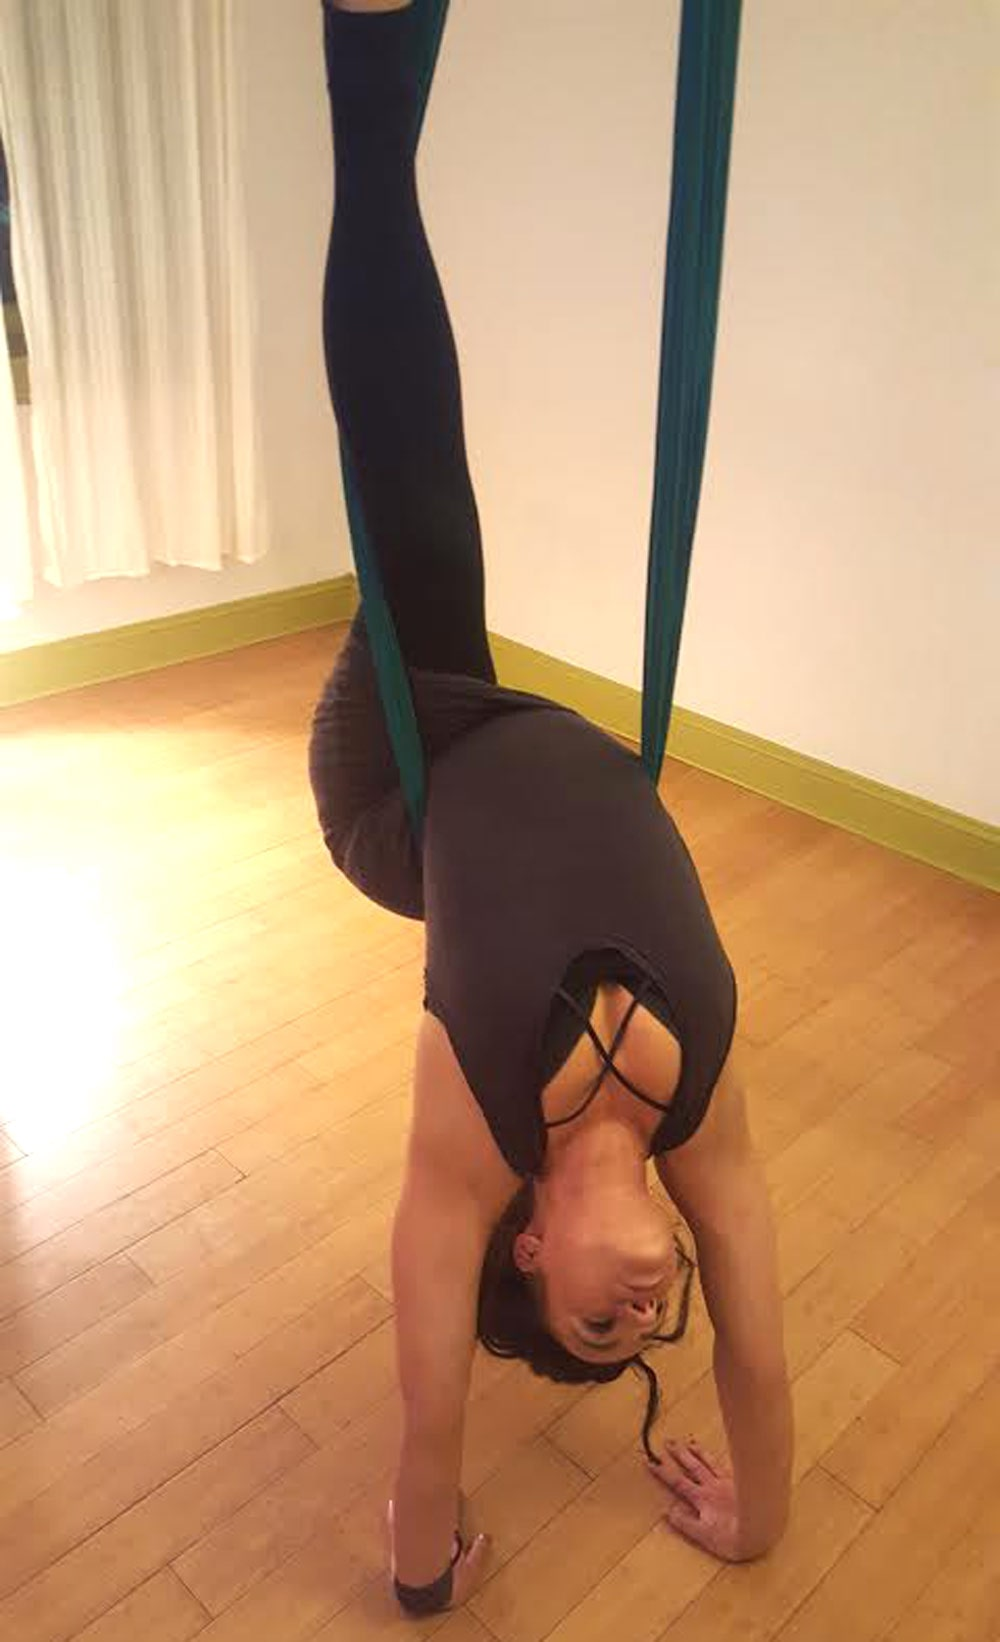 Carrie Ann, co-owner and studio director of kaya aerial yoga